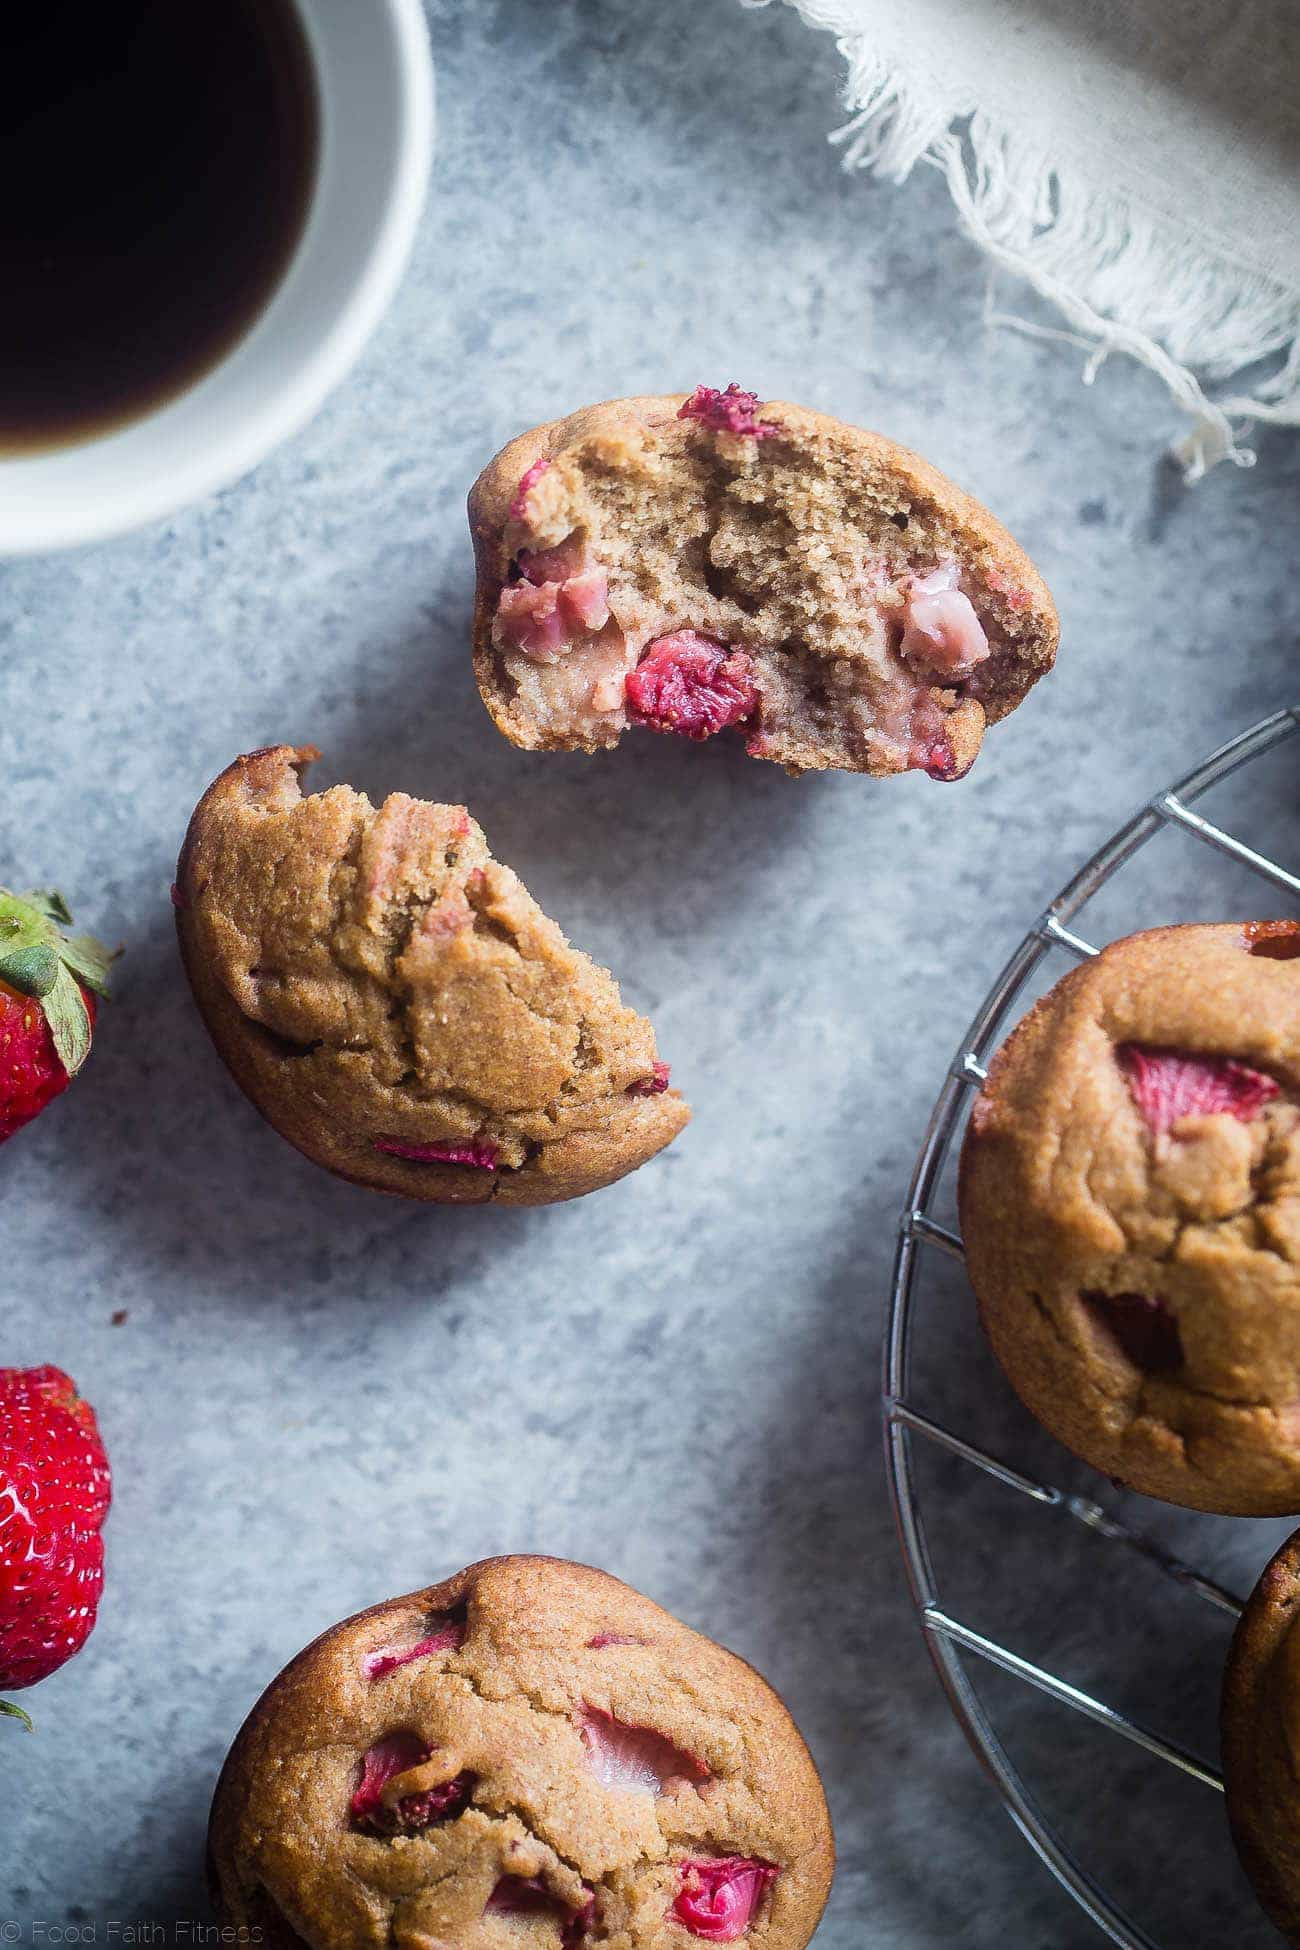 Skinny Strawberry Rhubarb Oatmeal Muffins - These healthy, gluten free muffins are naturally sweetened with dates and have no added sugar, butter or oil! They're low fat and only 125 calories too!   Foodfaithfitness.com   @FoodFaithFit